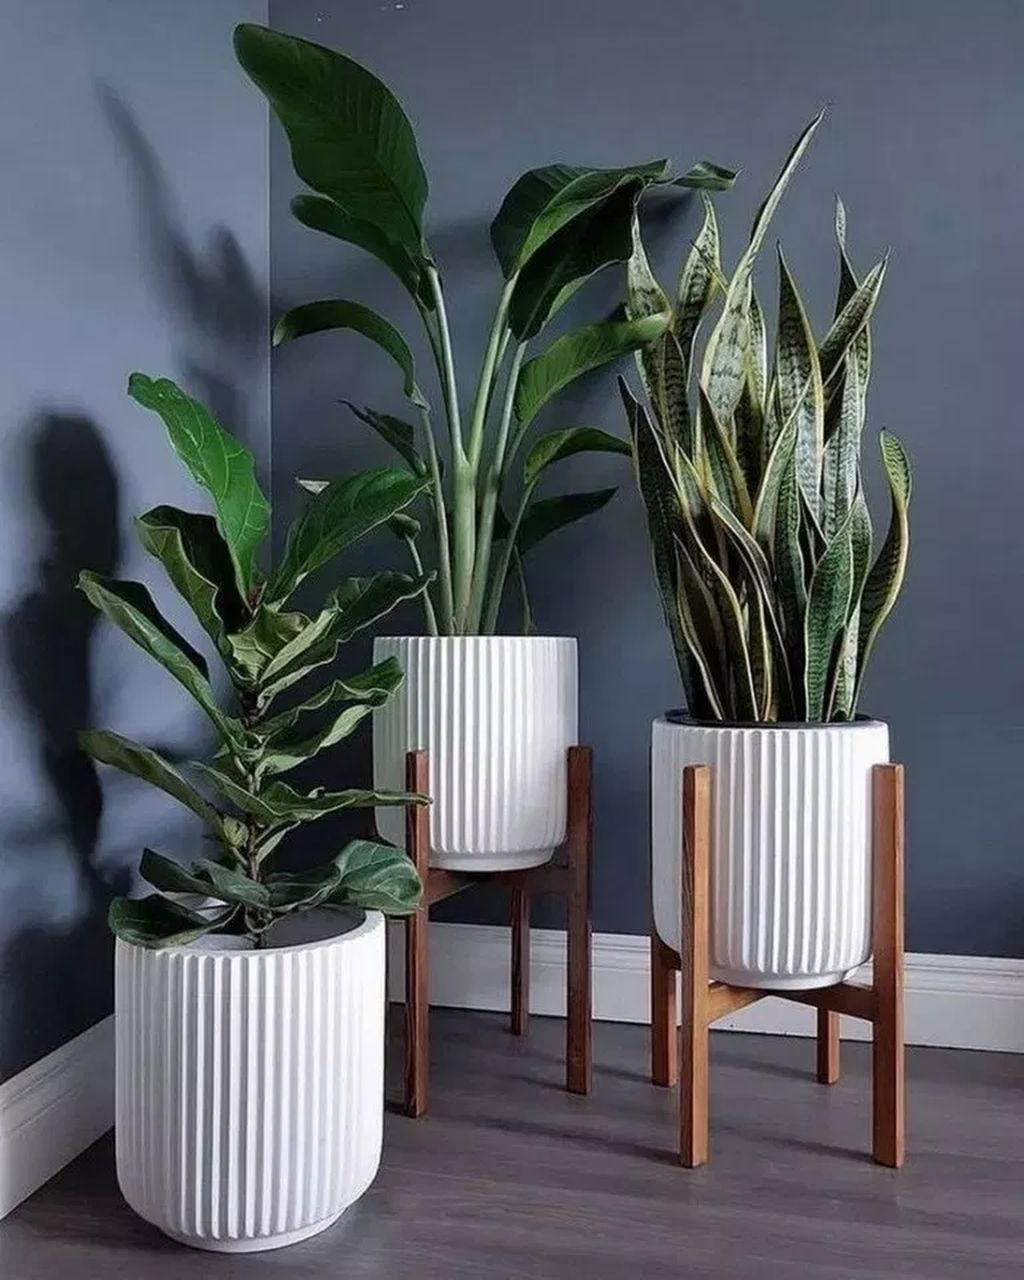 30+ Popular Indoor Plant Stands Ideas For Fresh Home ... on Amazing Plant Stand Ideas  id=66262